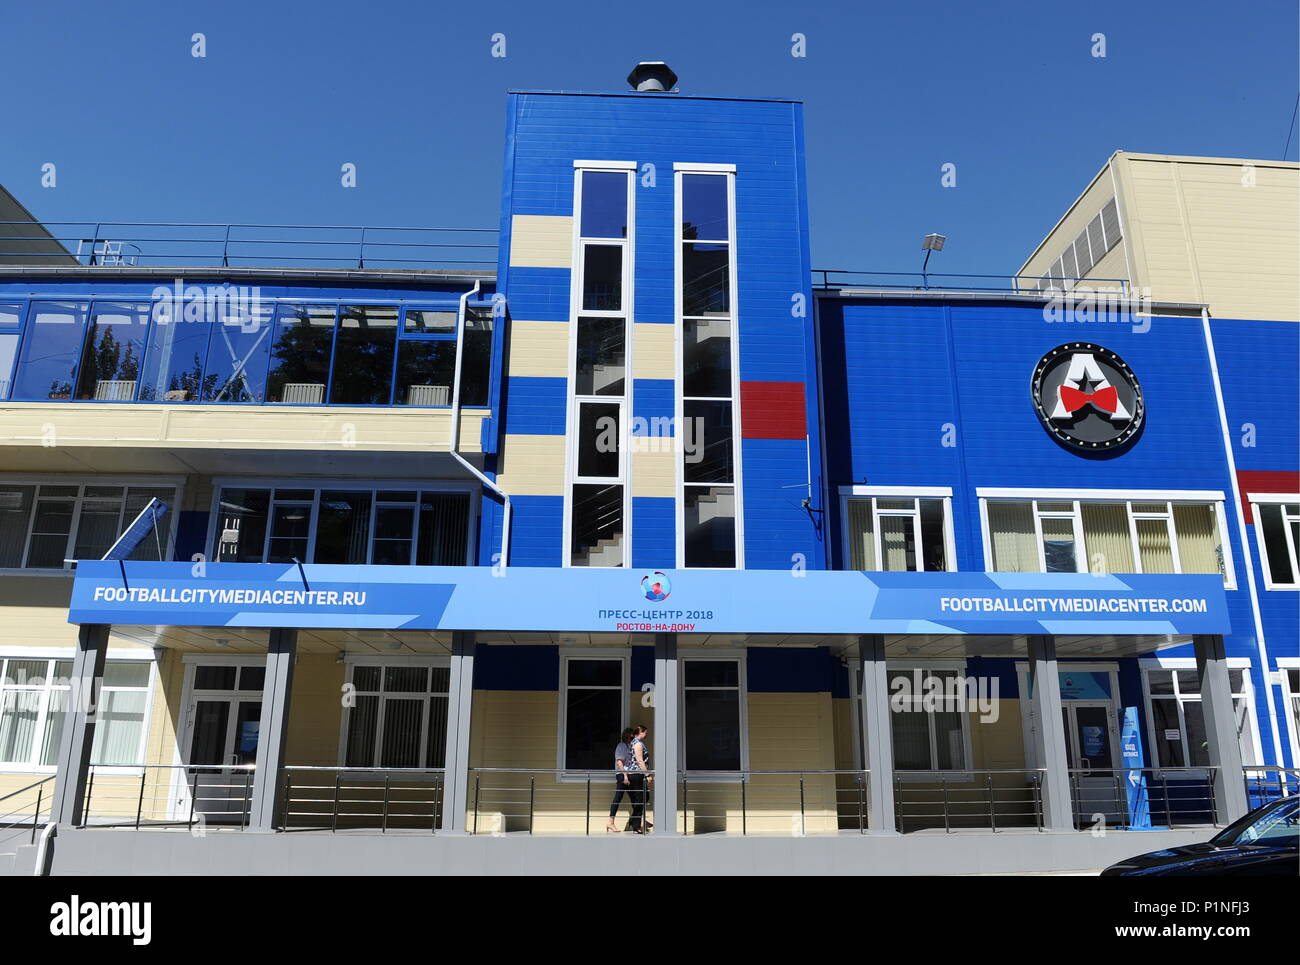 Rostov On Don, Russia. 13th June, 2018. ROSTOV-ON-DON, RUSSIA - JUNE 13, 2018: A view of the 2018 FIFA World Cup press office. Maxim Romanov/TASS Credit: ITAR-TASS News Agency/Alamy Live News Stock Photo